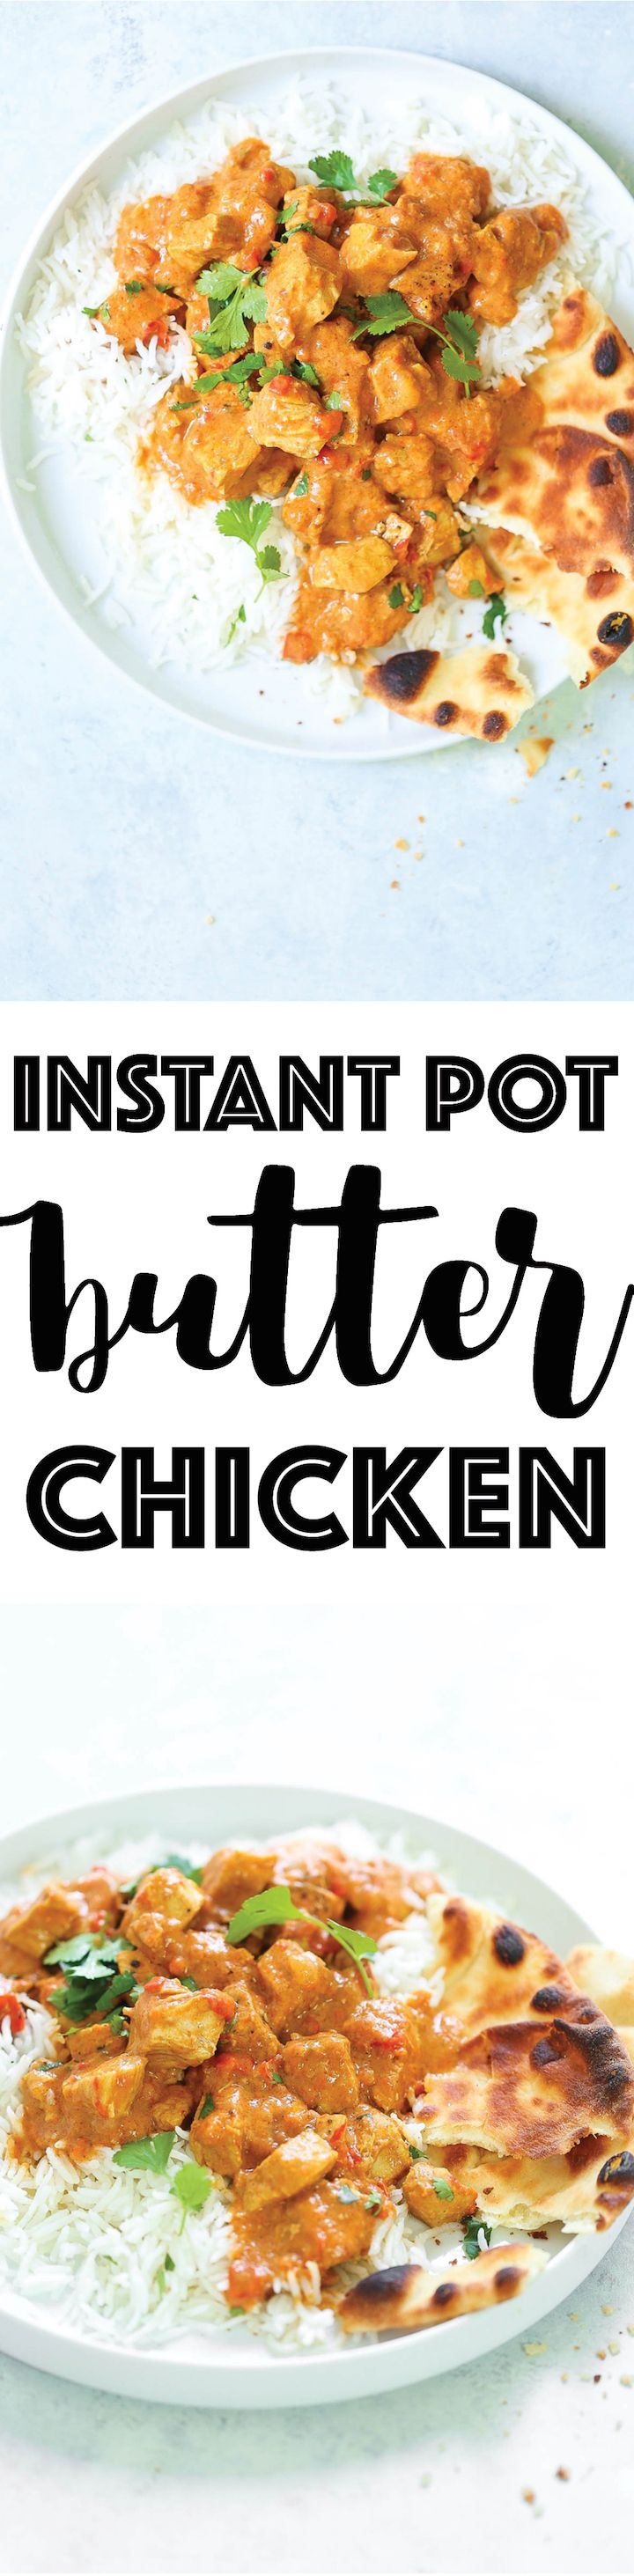 Instant Pot Butter Chicken - Yes, you can EASILY make restaurant-quality butter chicken right in your pressure cooker! The flavors are amazing and the chicken is perfectly melt-in-your-mouth tender! Serve with rice and naan for the best home-cooked meal ever.